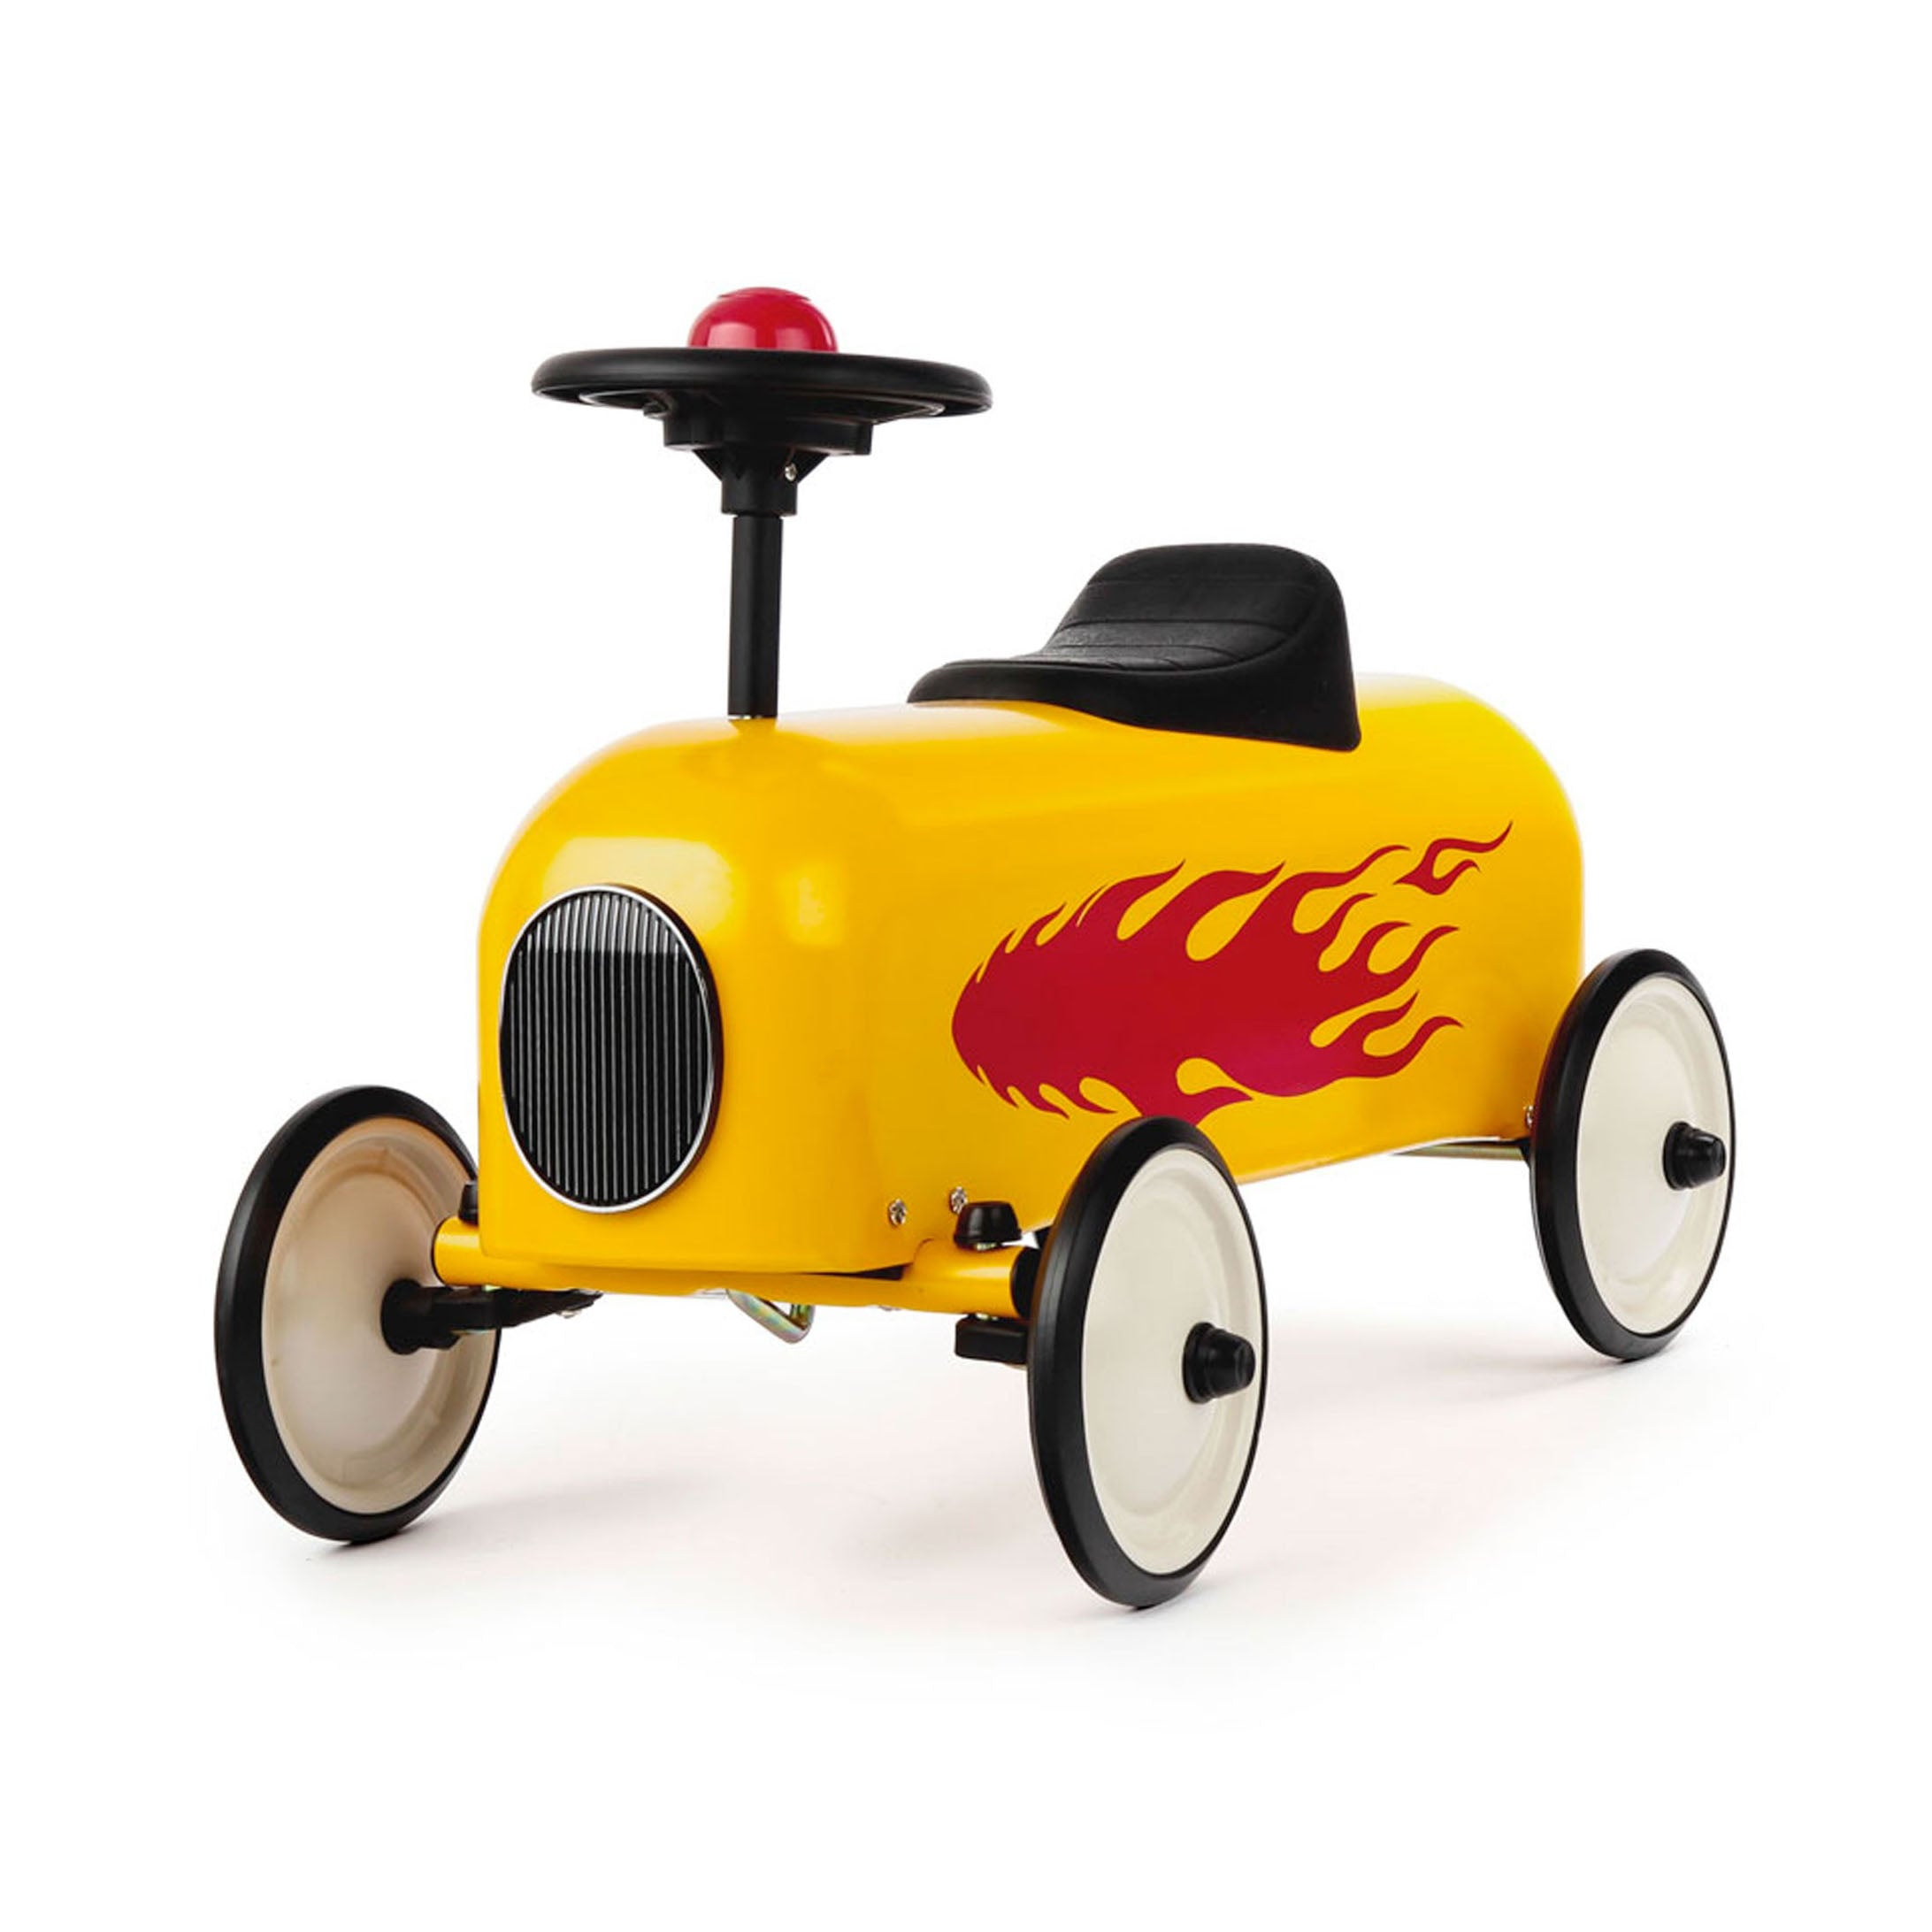 Flame Racer Ride On by Baghera